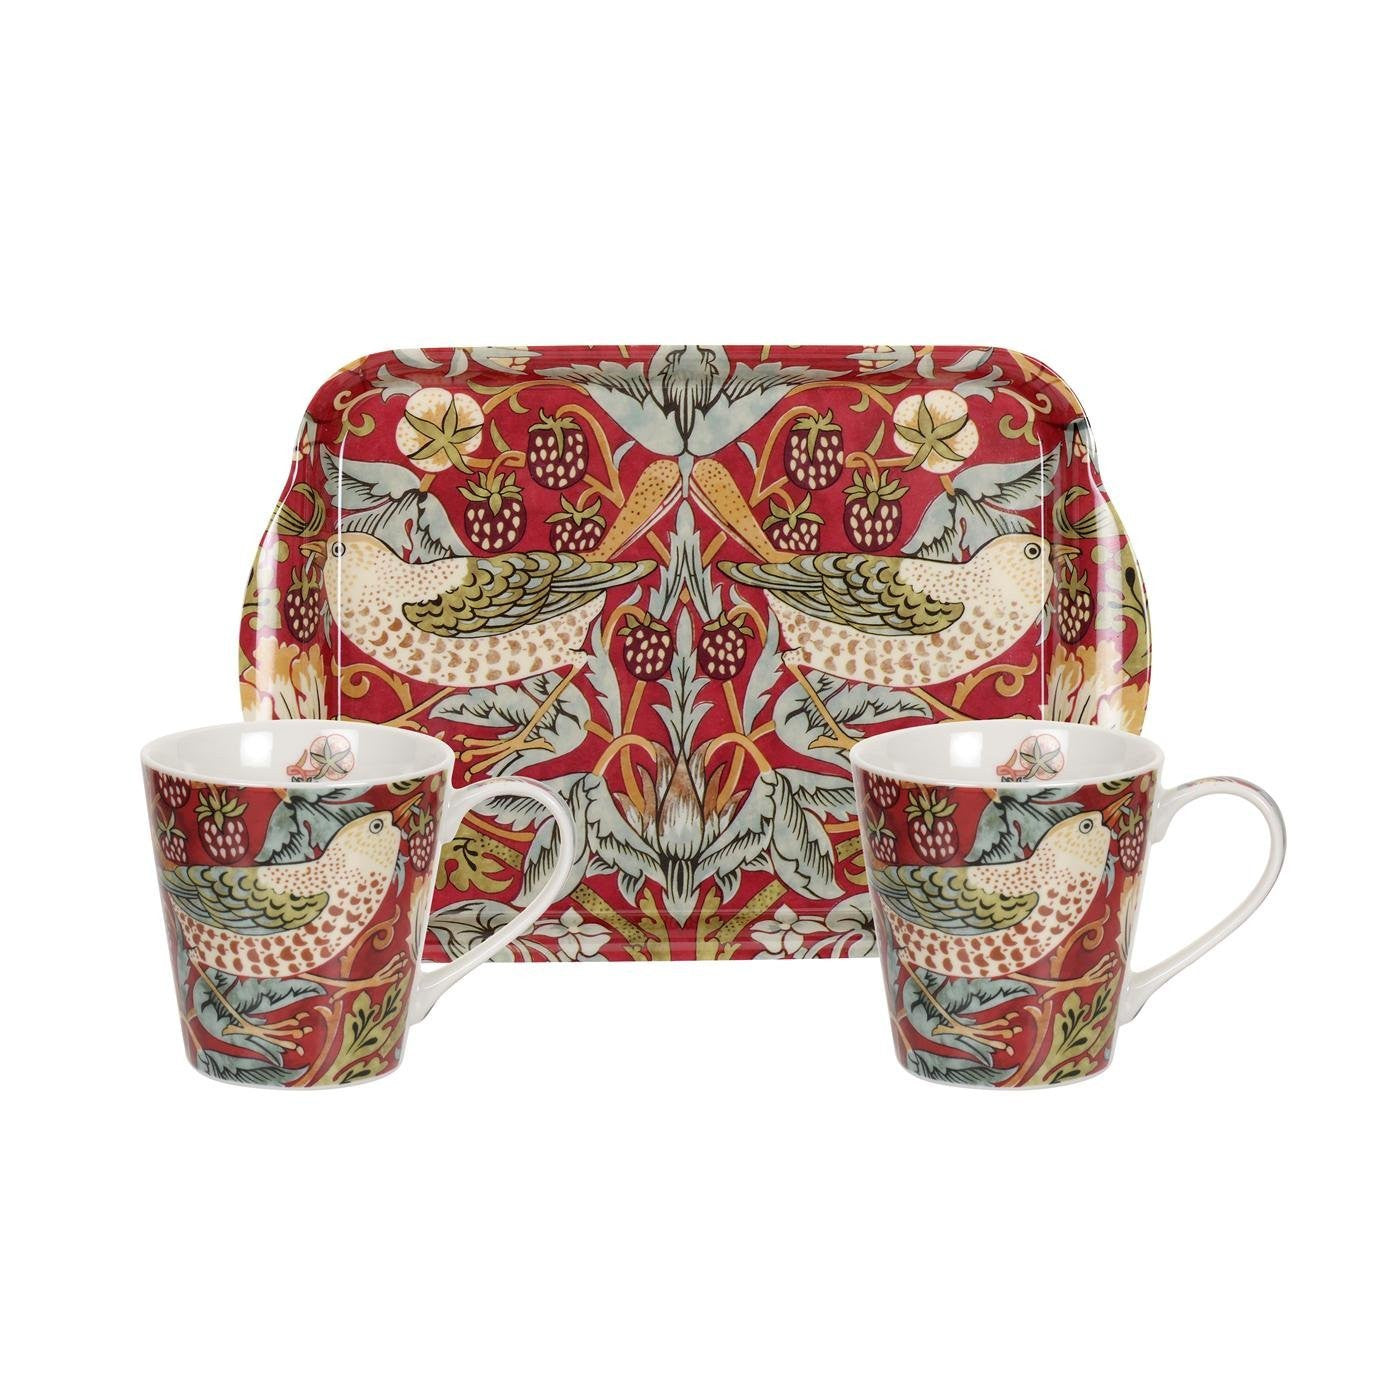 "Morris & Co ""Strawberry Thief"" Mug and Tray Set"